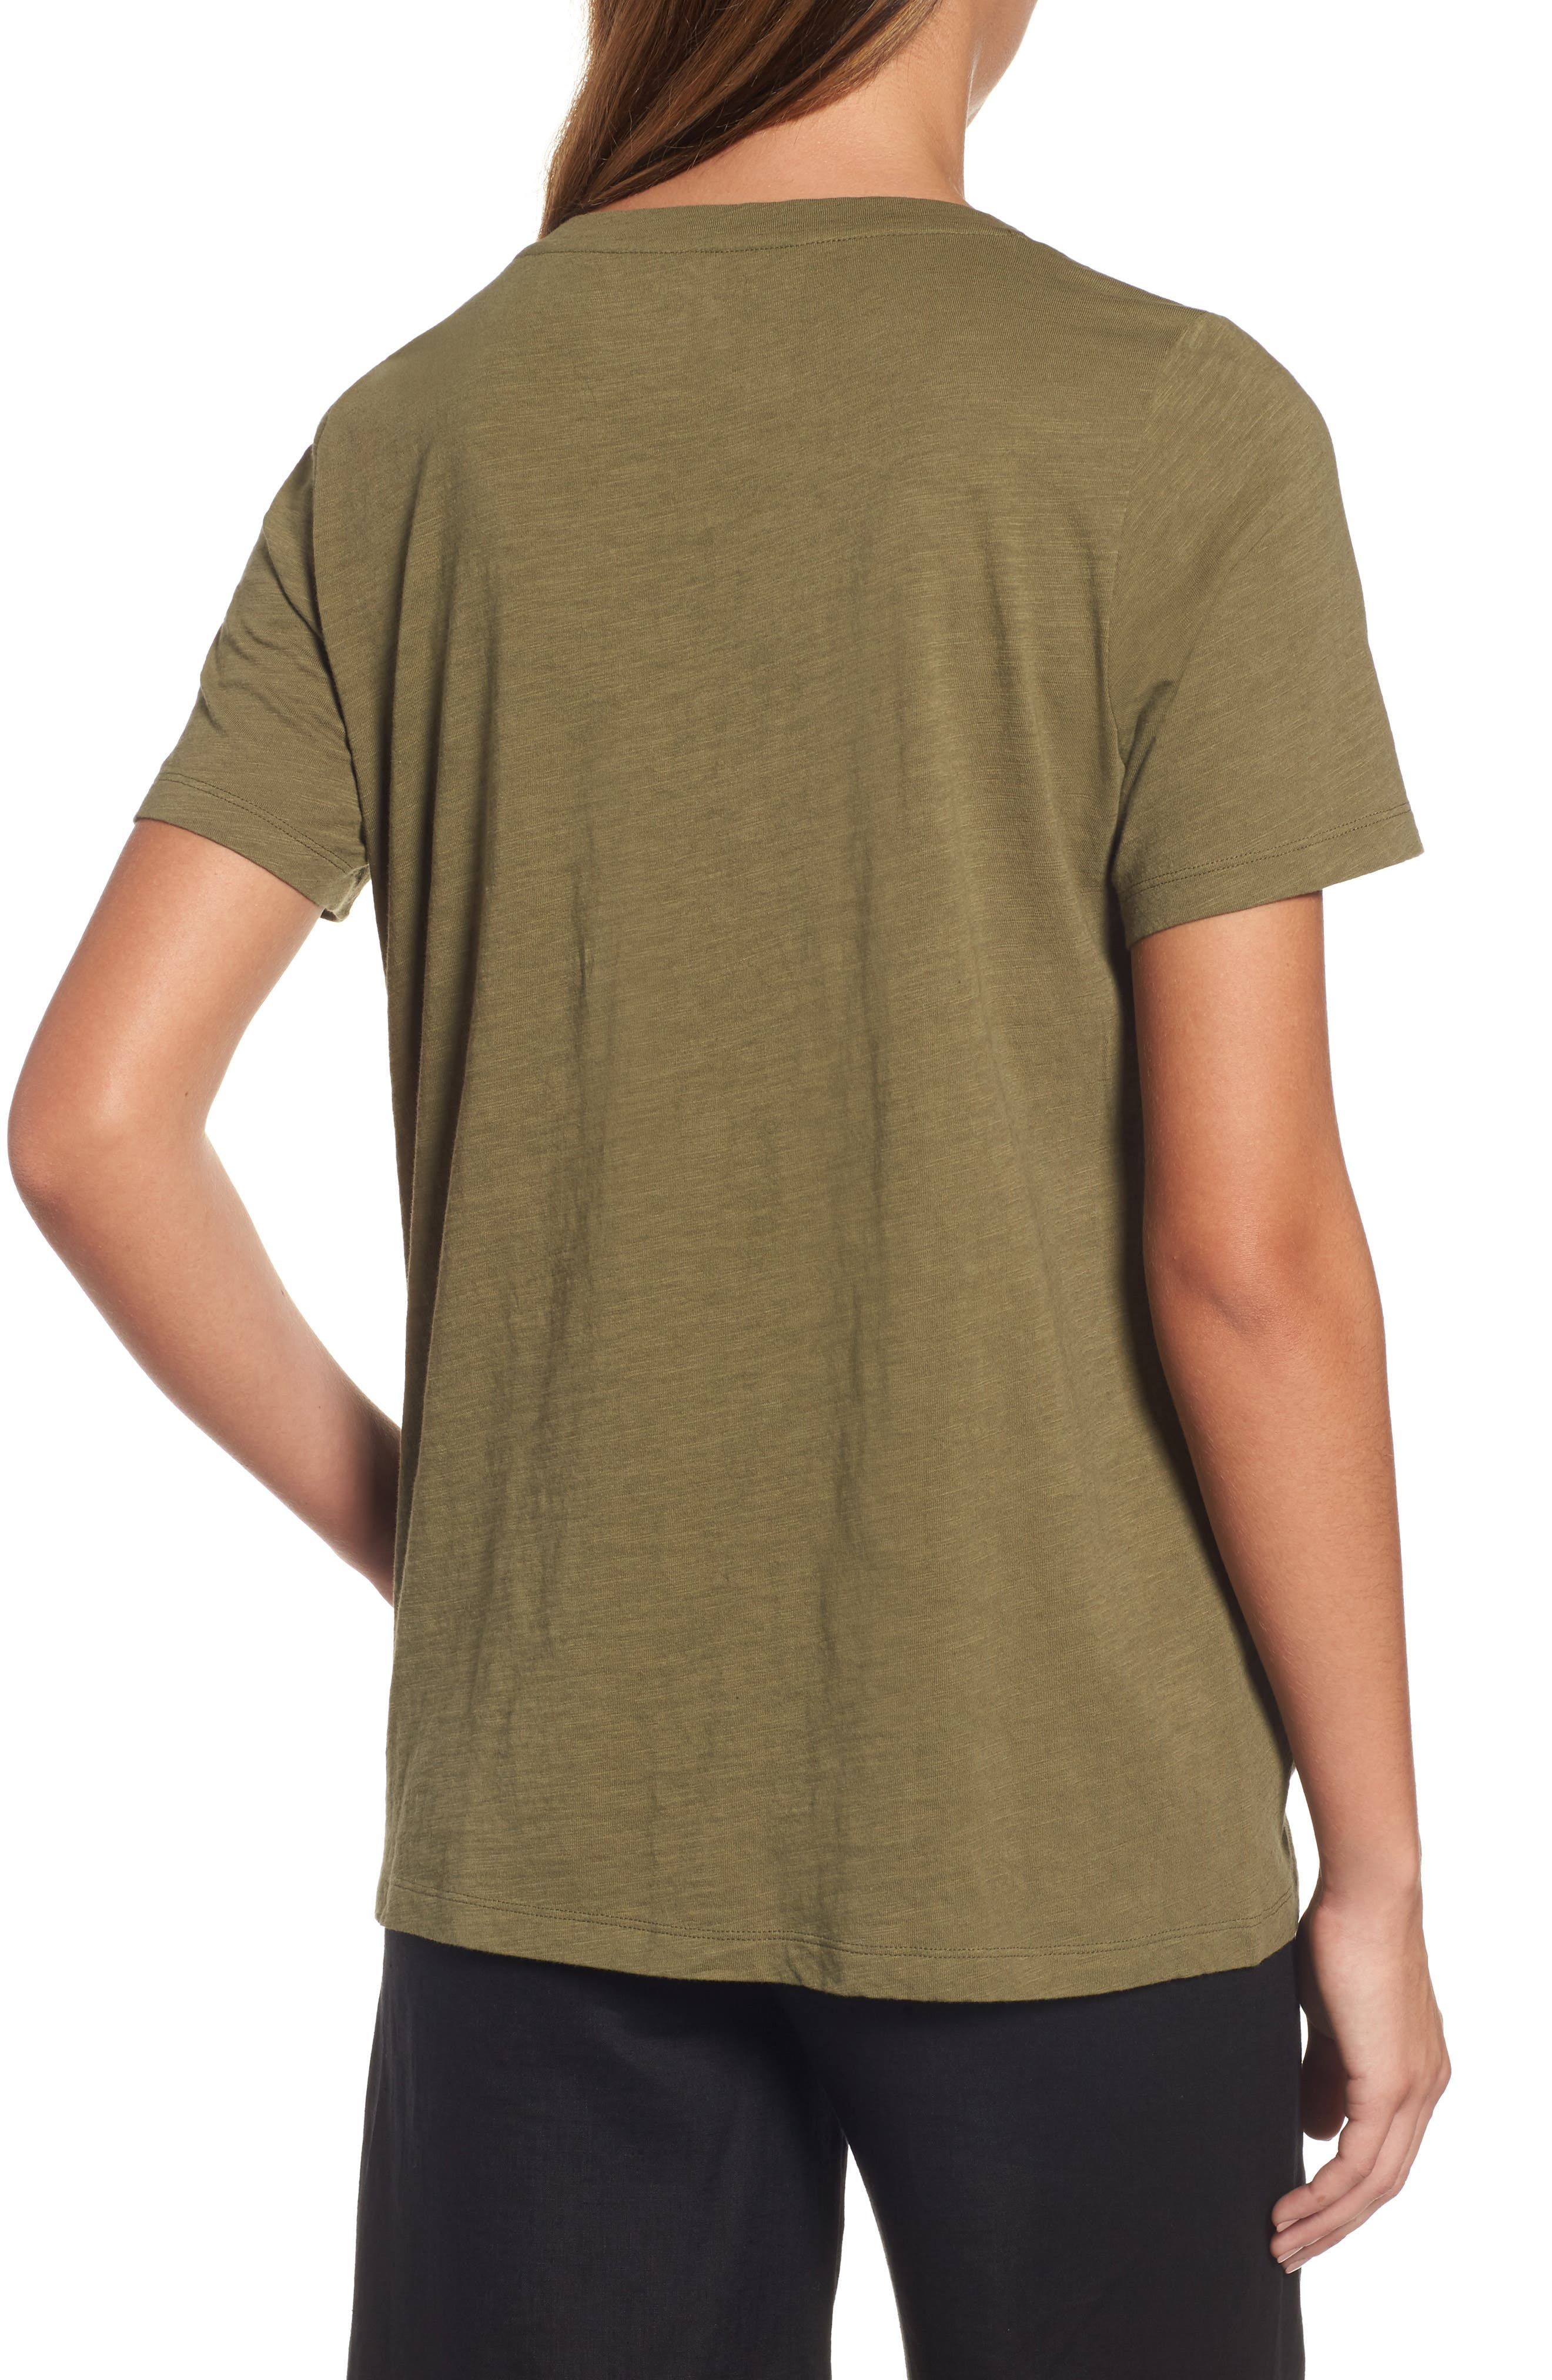 Organic Cotton Tee,                             Alternate thumbnail 2, color,                             Olive